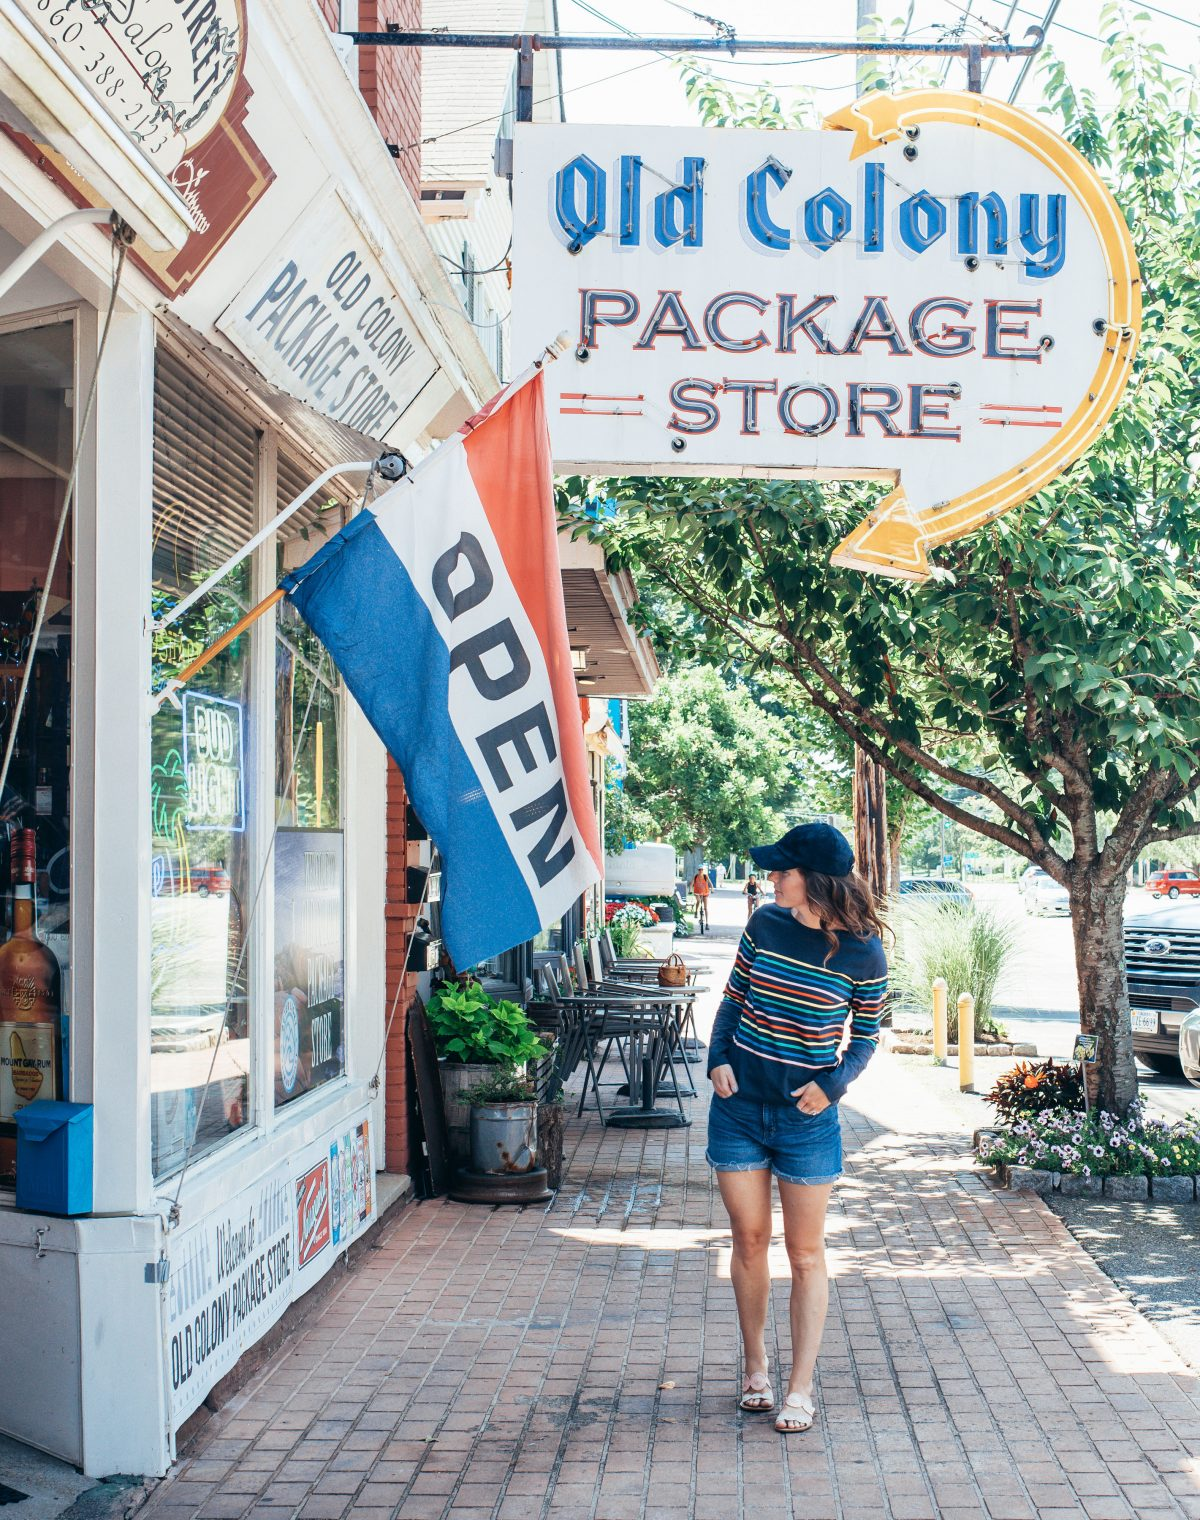 Woman in striped shirt and navy blue hat and denim shorts looking in Old Colony Package Store in Old Saybrook